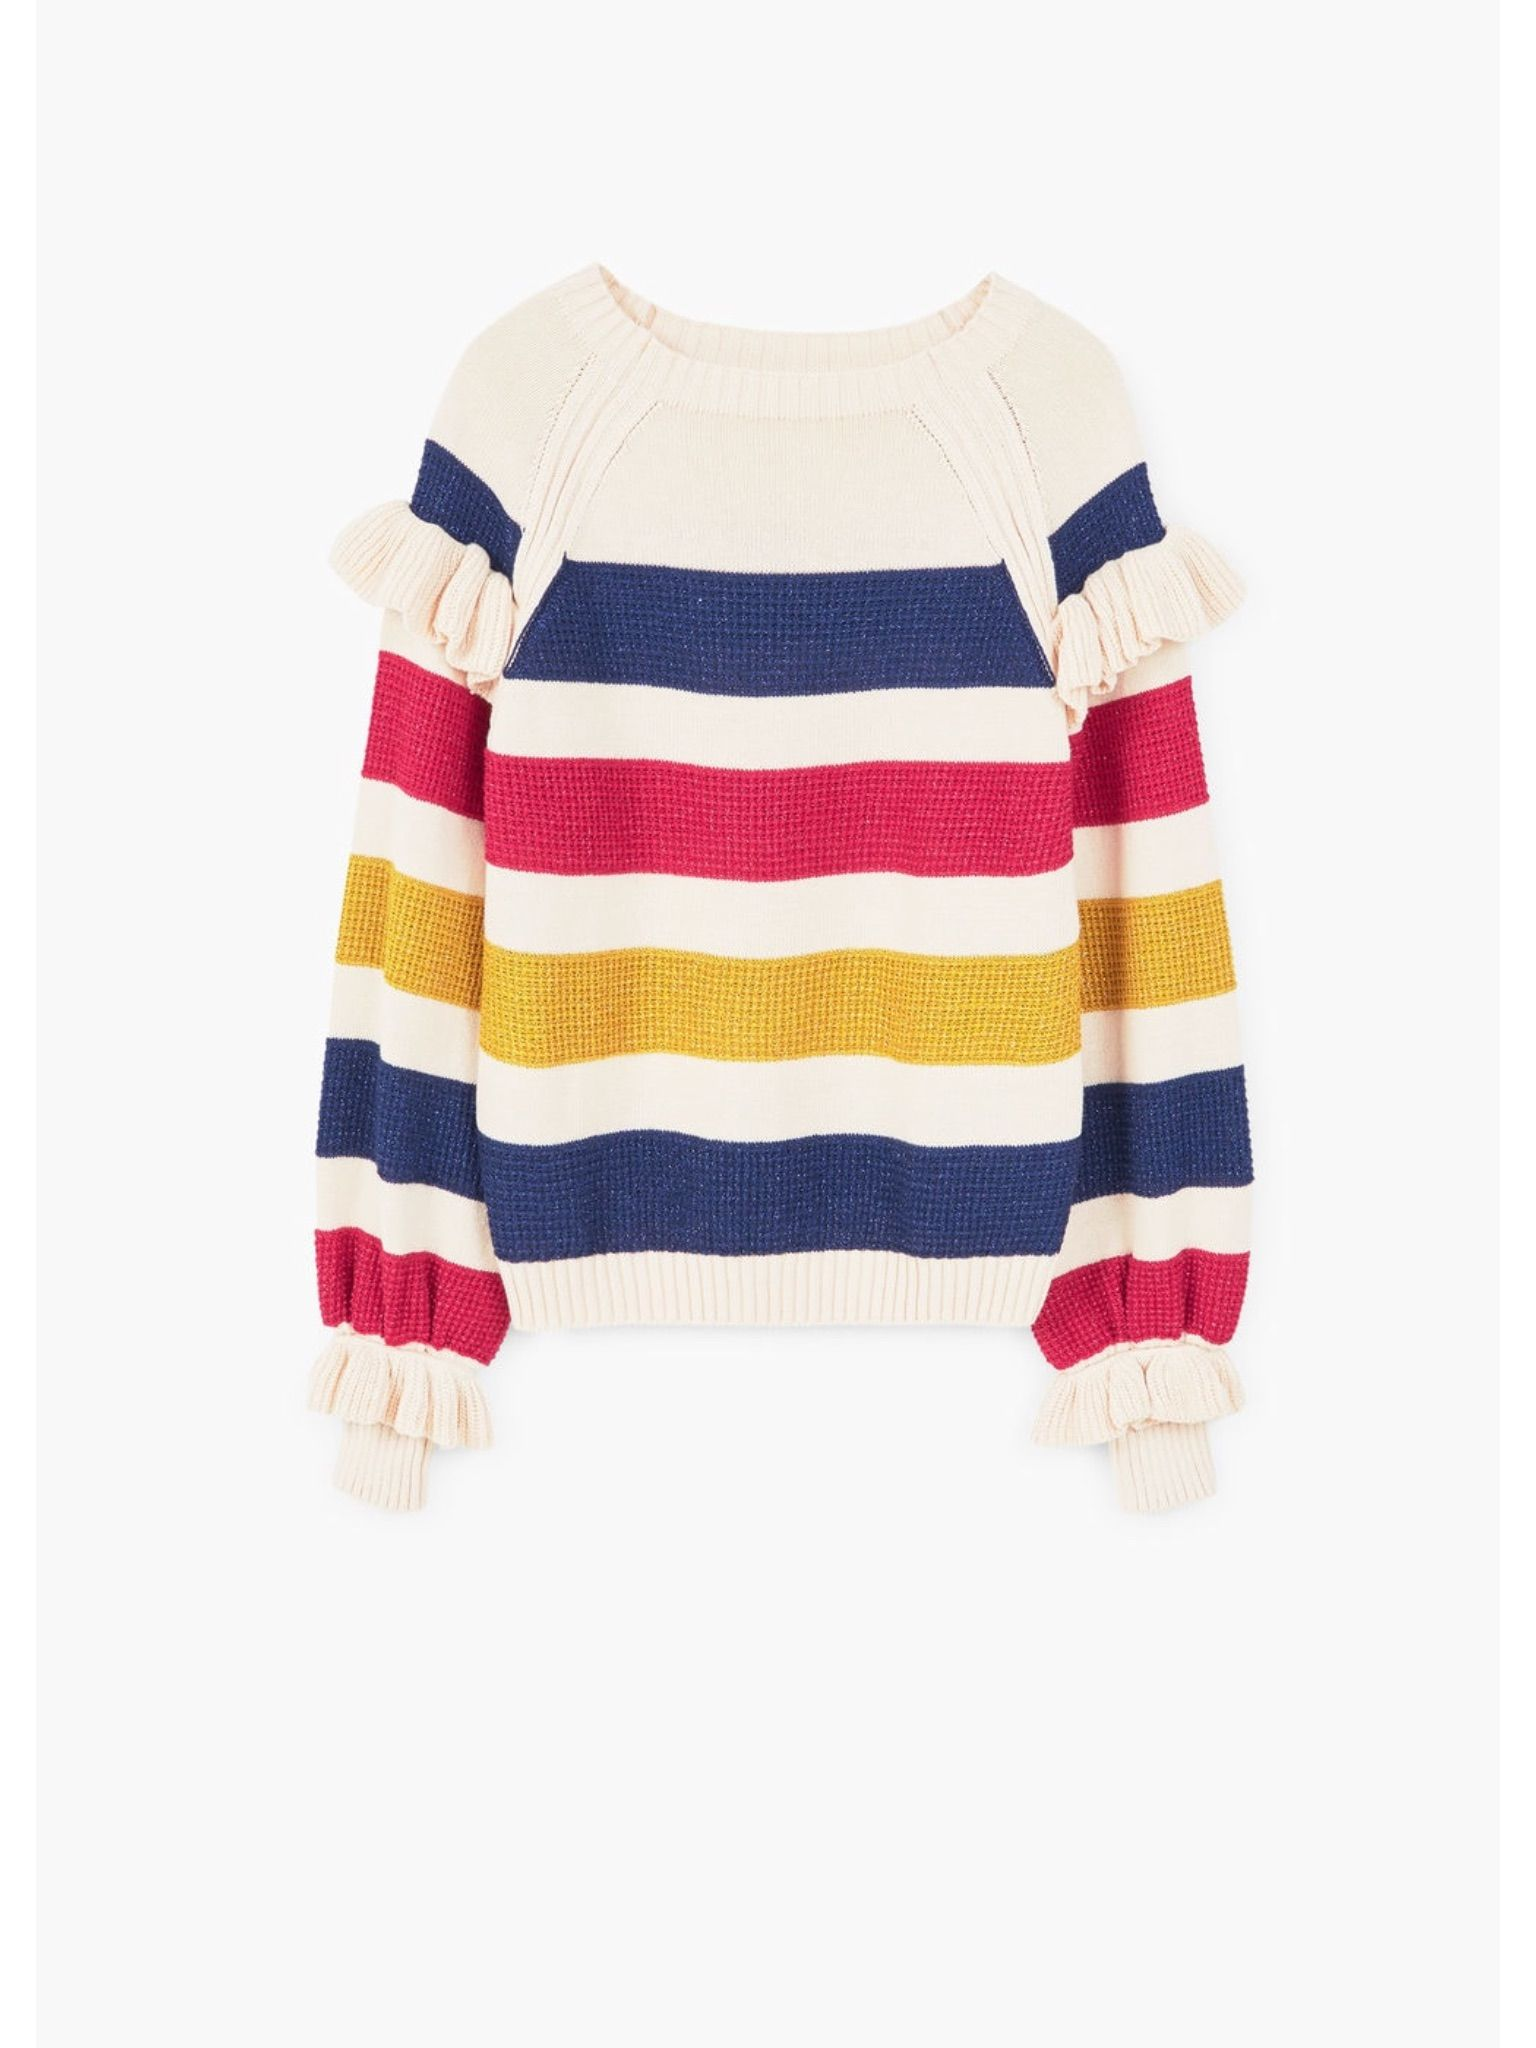 White knitted sweater with blue, red and yellow stripes | N Style ...